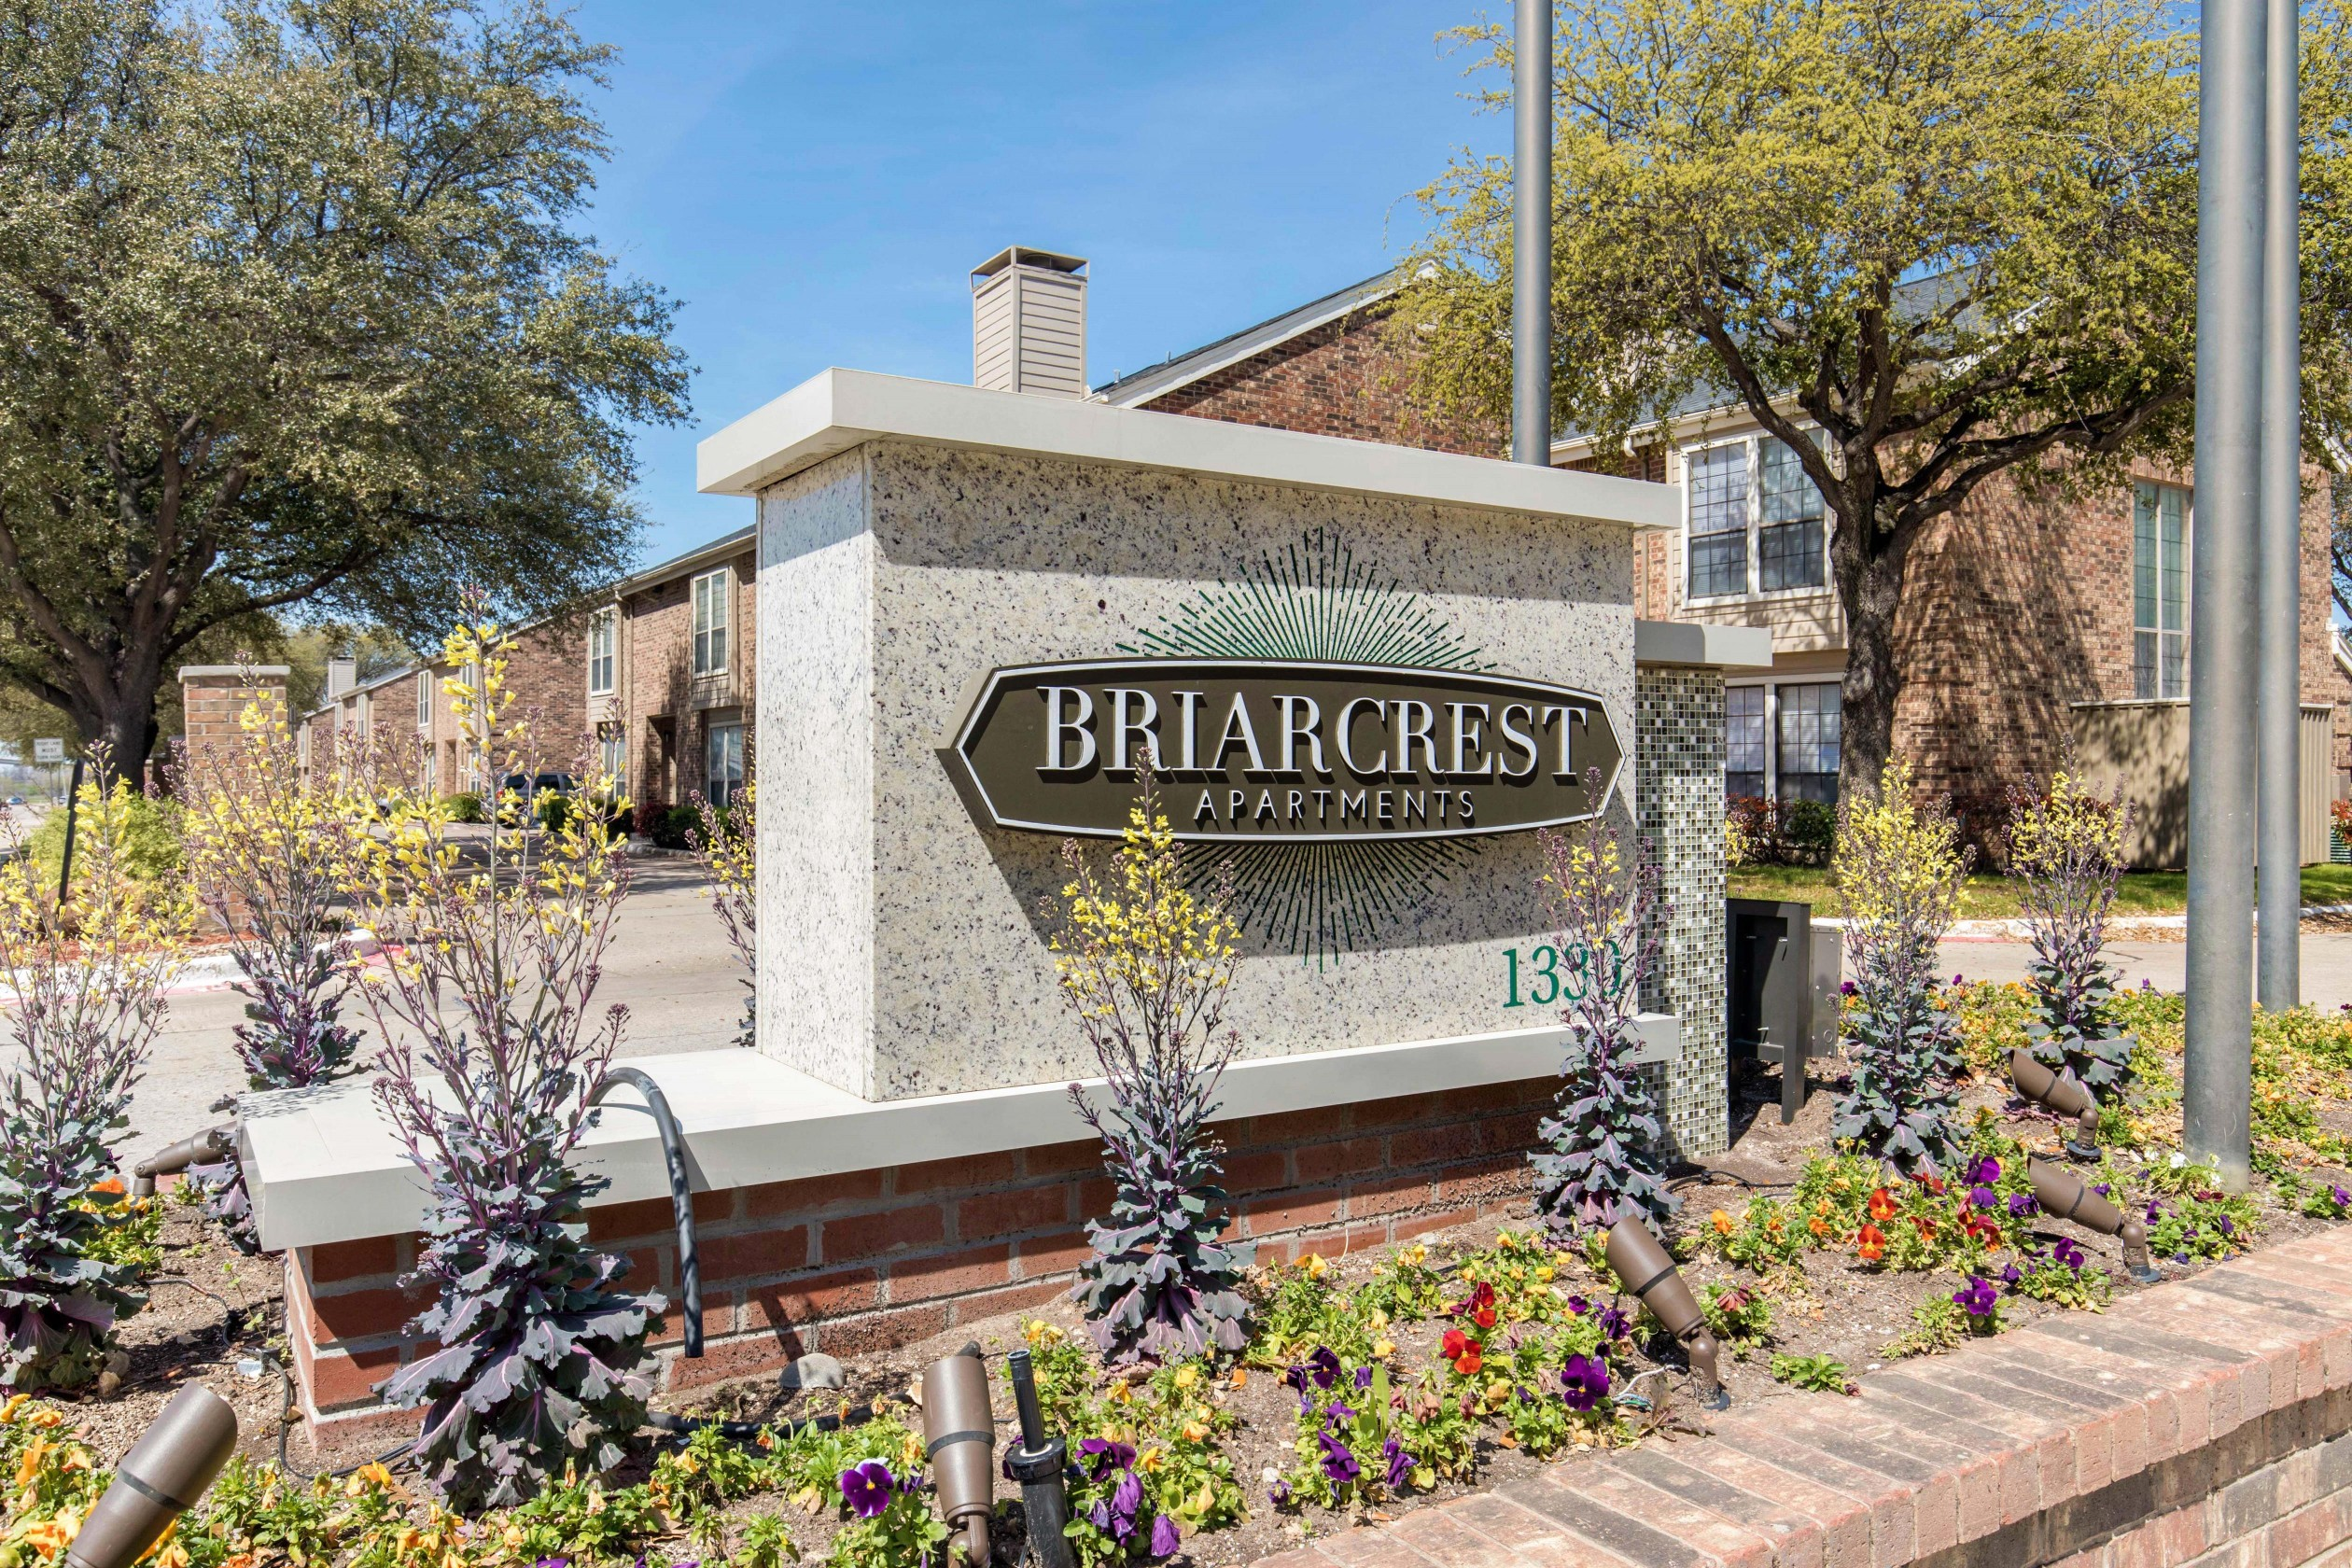 Briarcrest Apartments